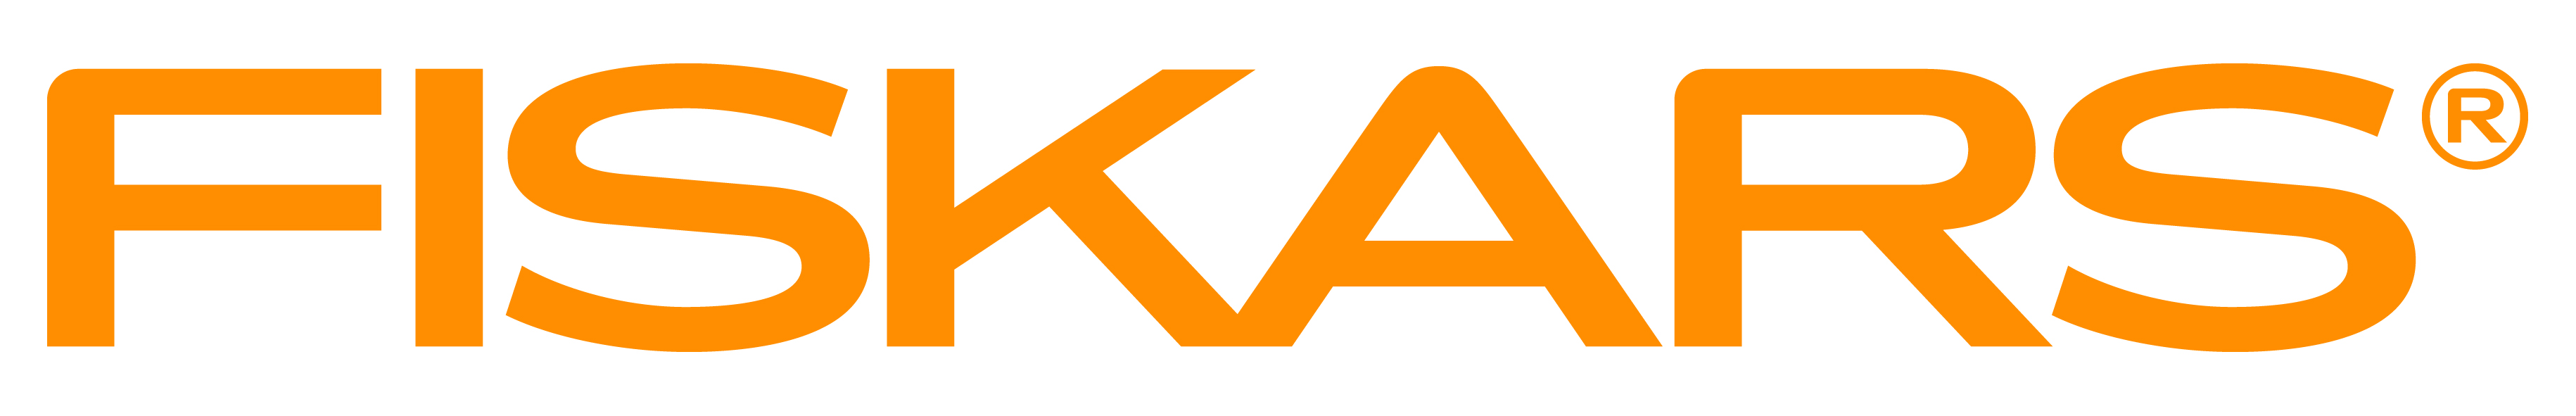 Fiskars Estonia AS logo